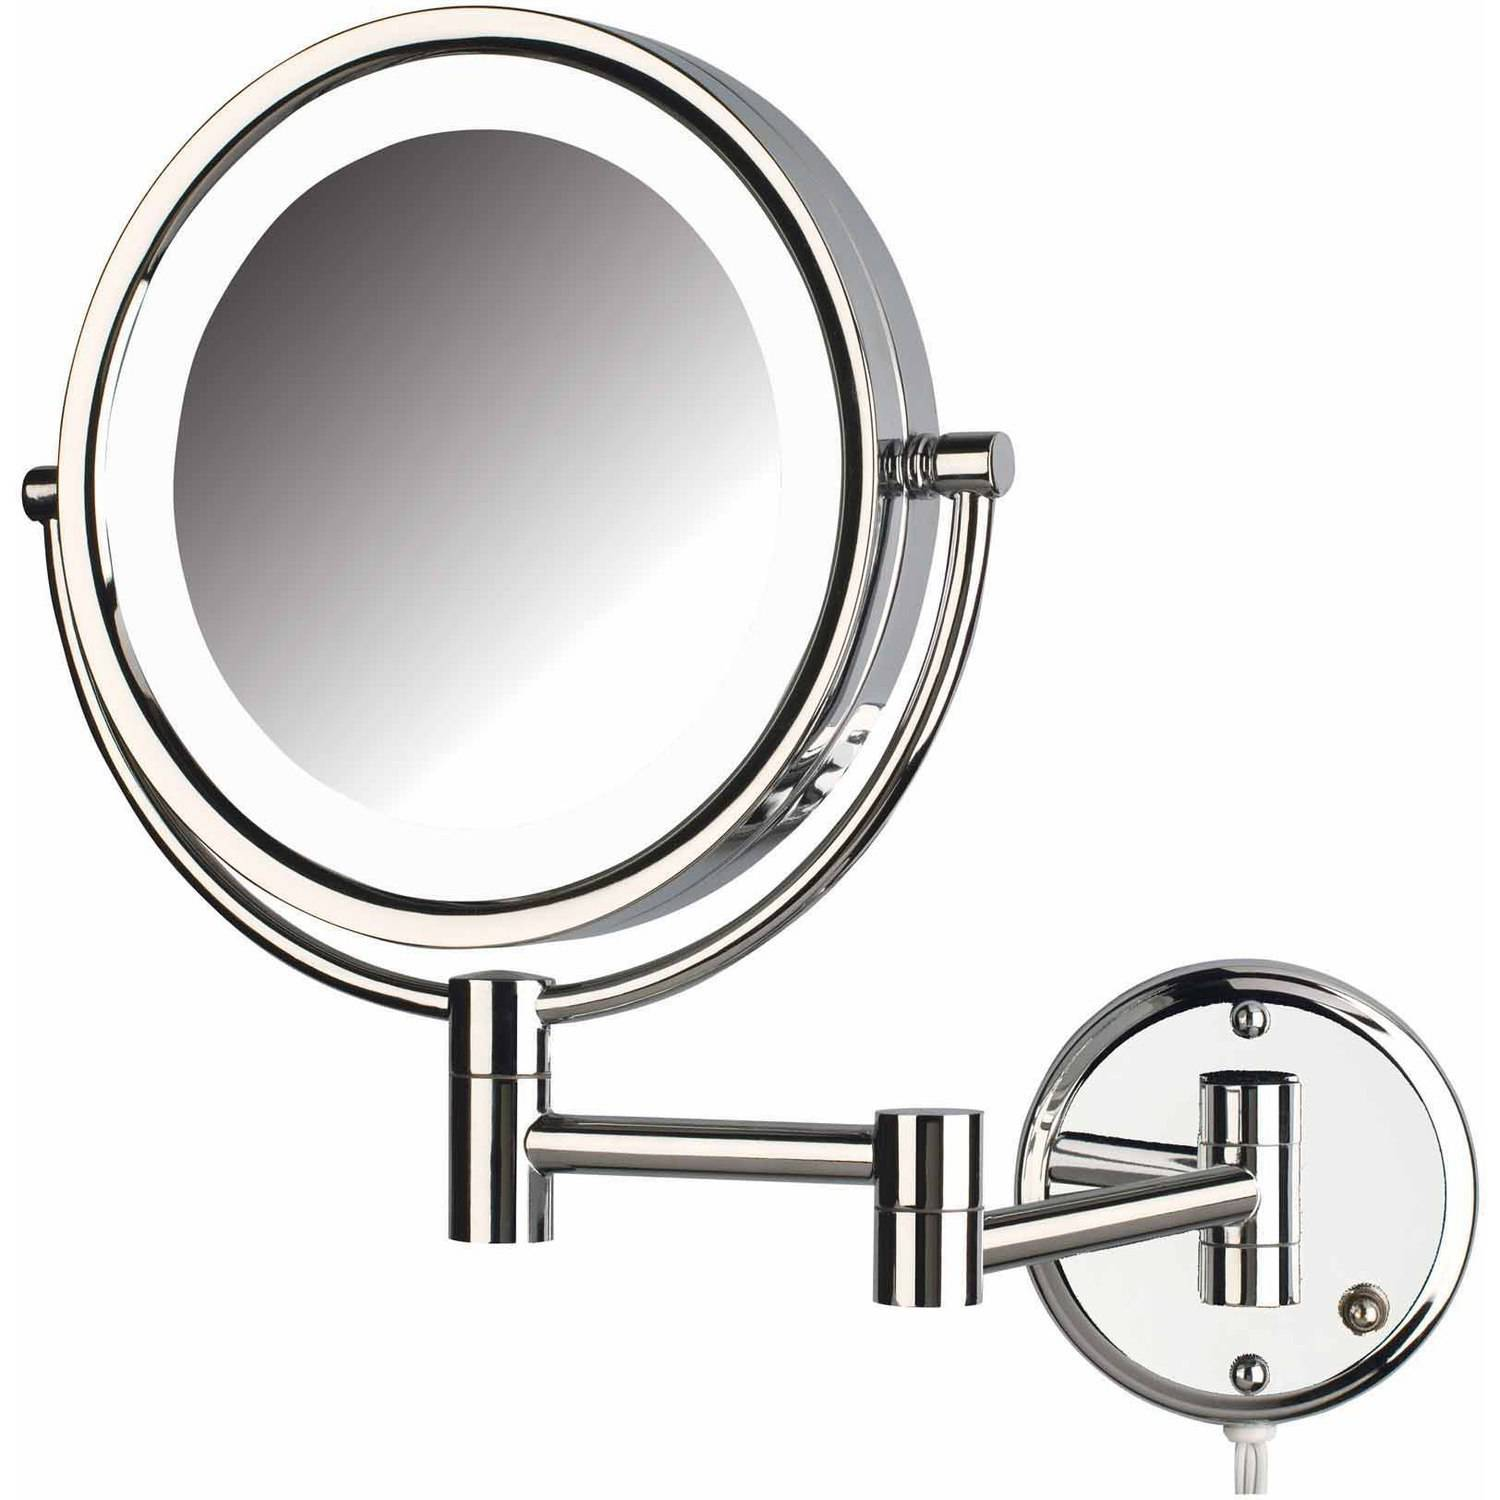 Jerdon hl88cl 85 led lighted wall mount makeup mirror with 8x jerdon hl88cl 85 led lighted wall mount makeup mirror with 8x magnification chrome finish walmart aloadofball Images